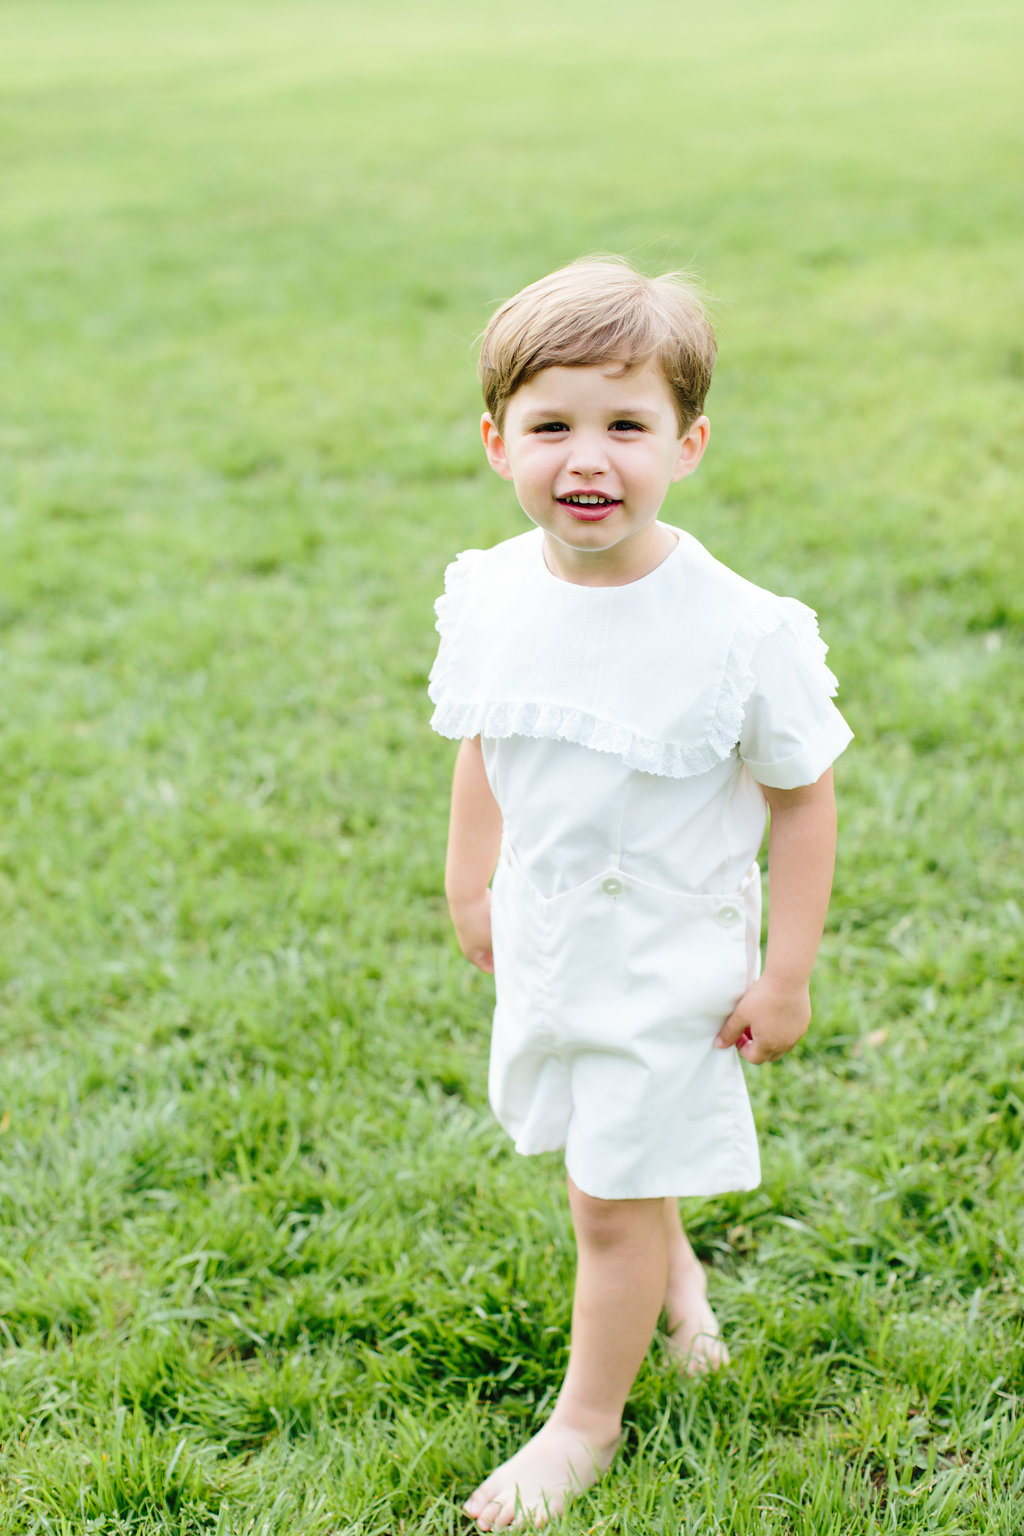 ring-bearer-greg-boulus-events-augusta-georgia.jpg